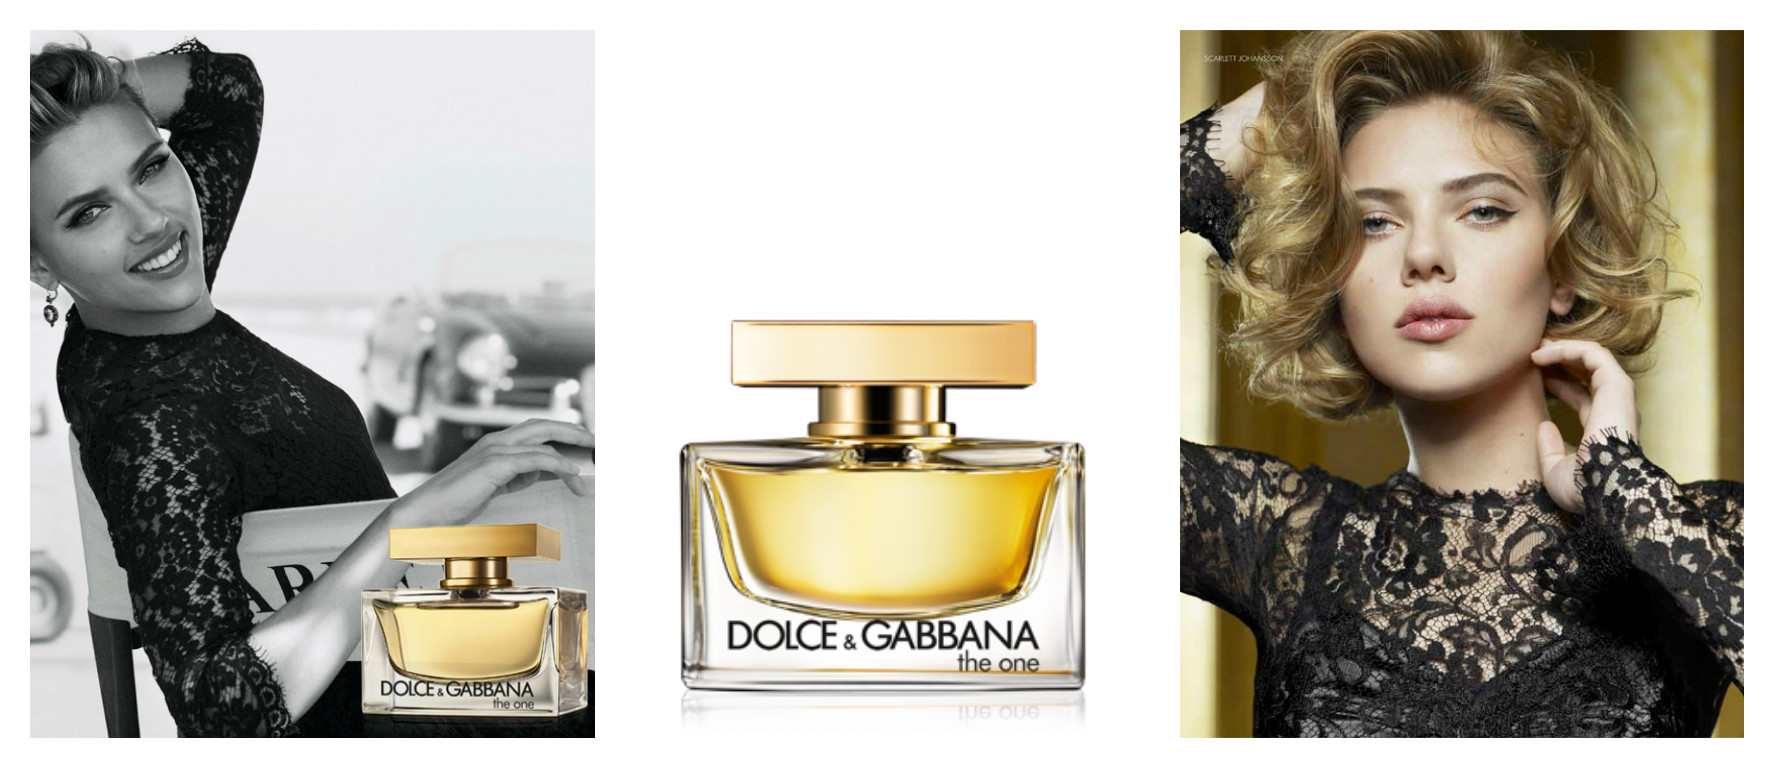 Dolce&Gabbana The One Review by Scentbird